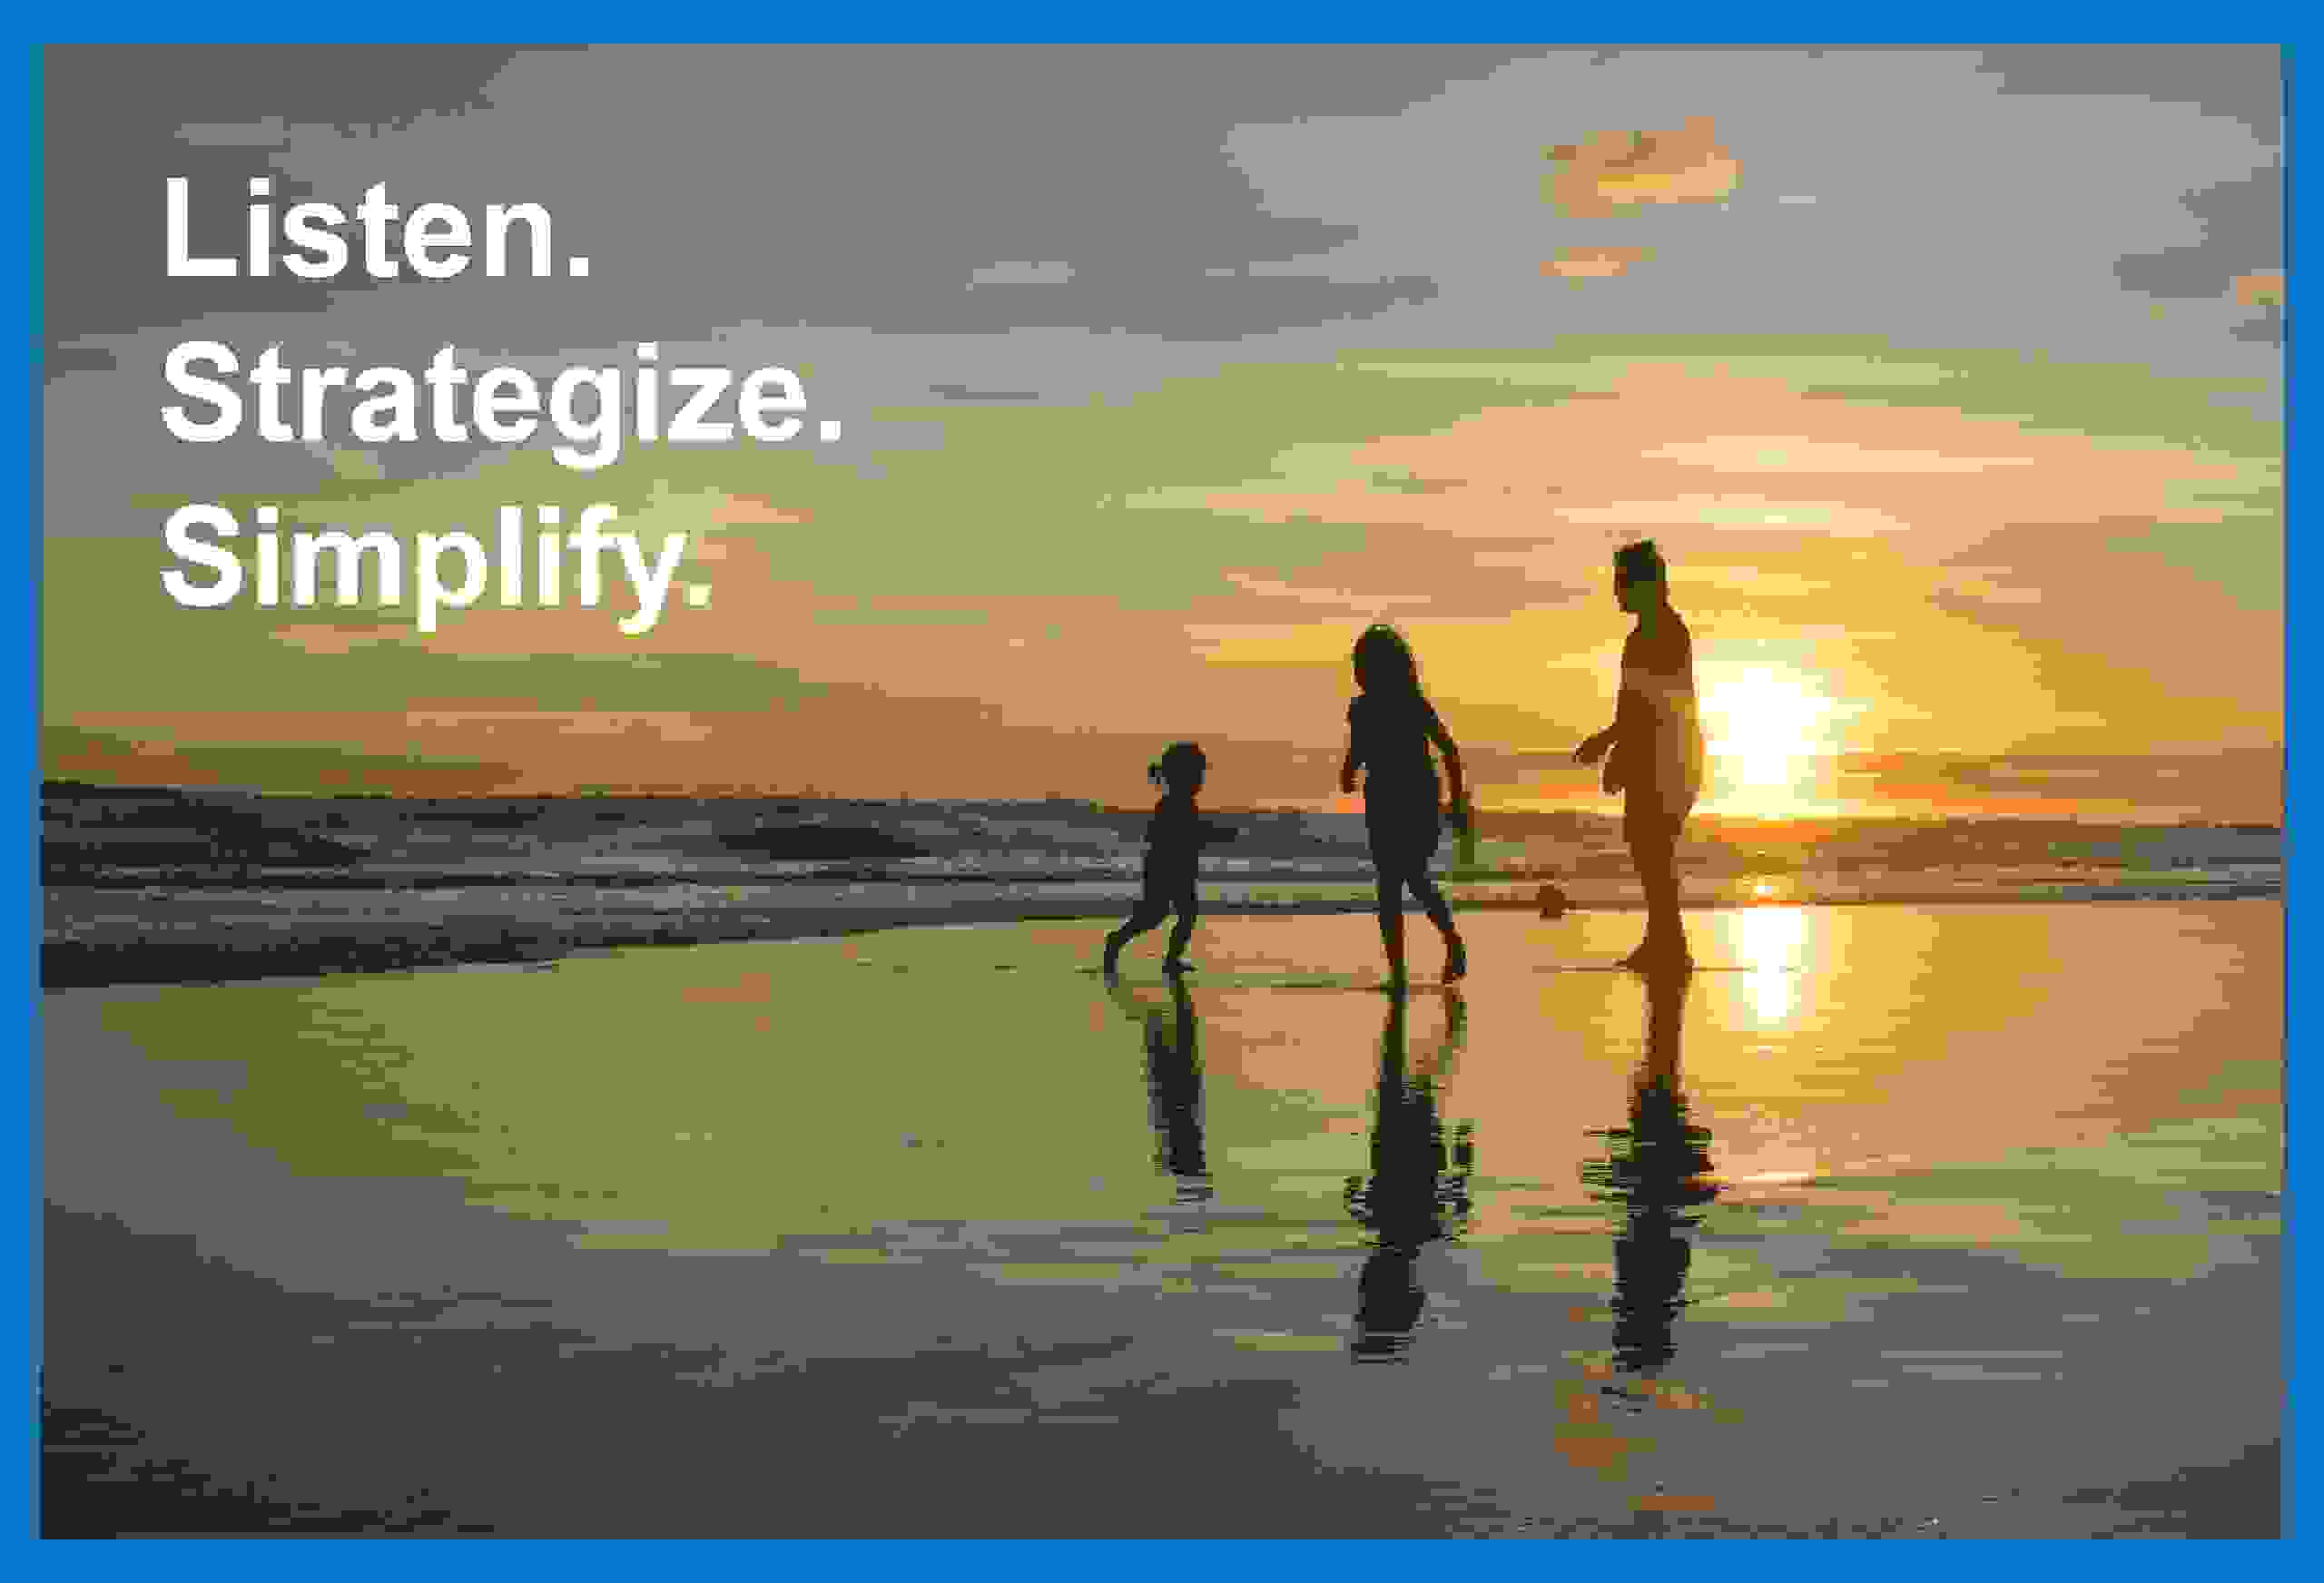 Listen. Strategize. Simplify. Family at the beach in the sunset